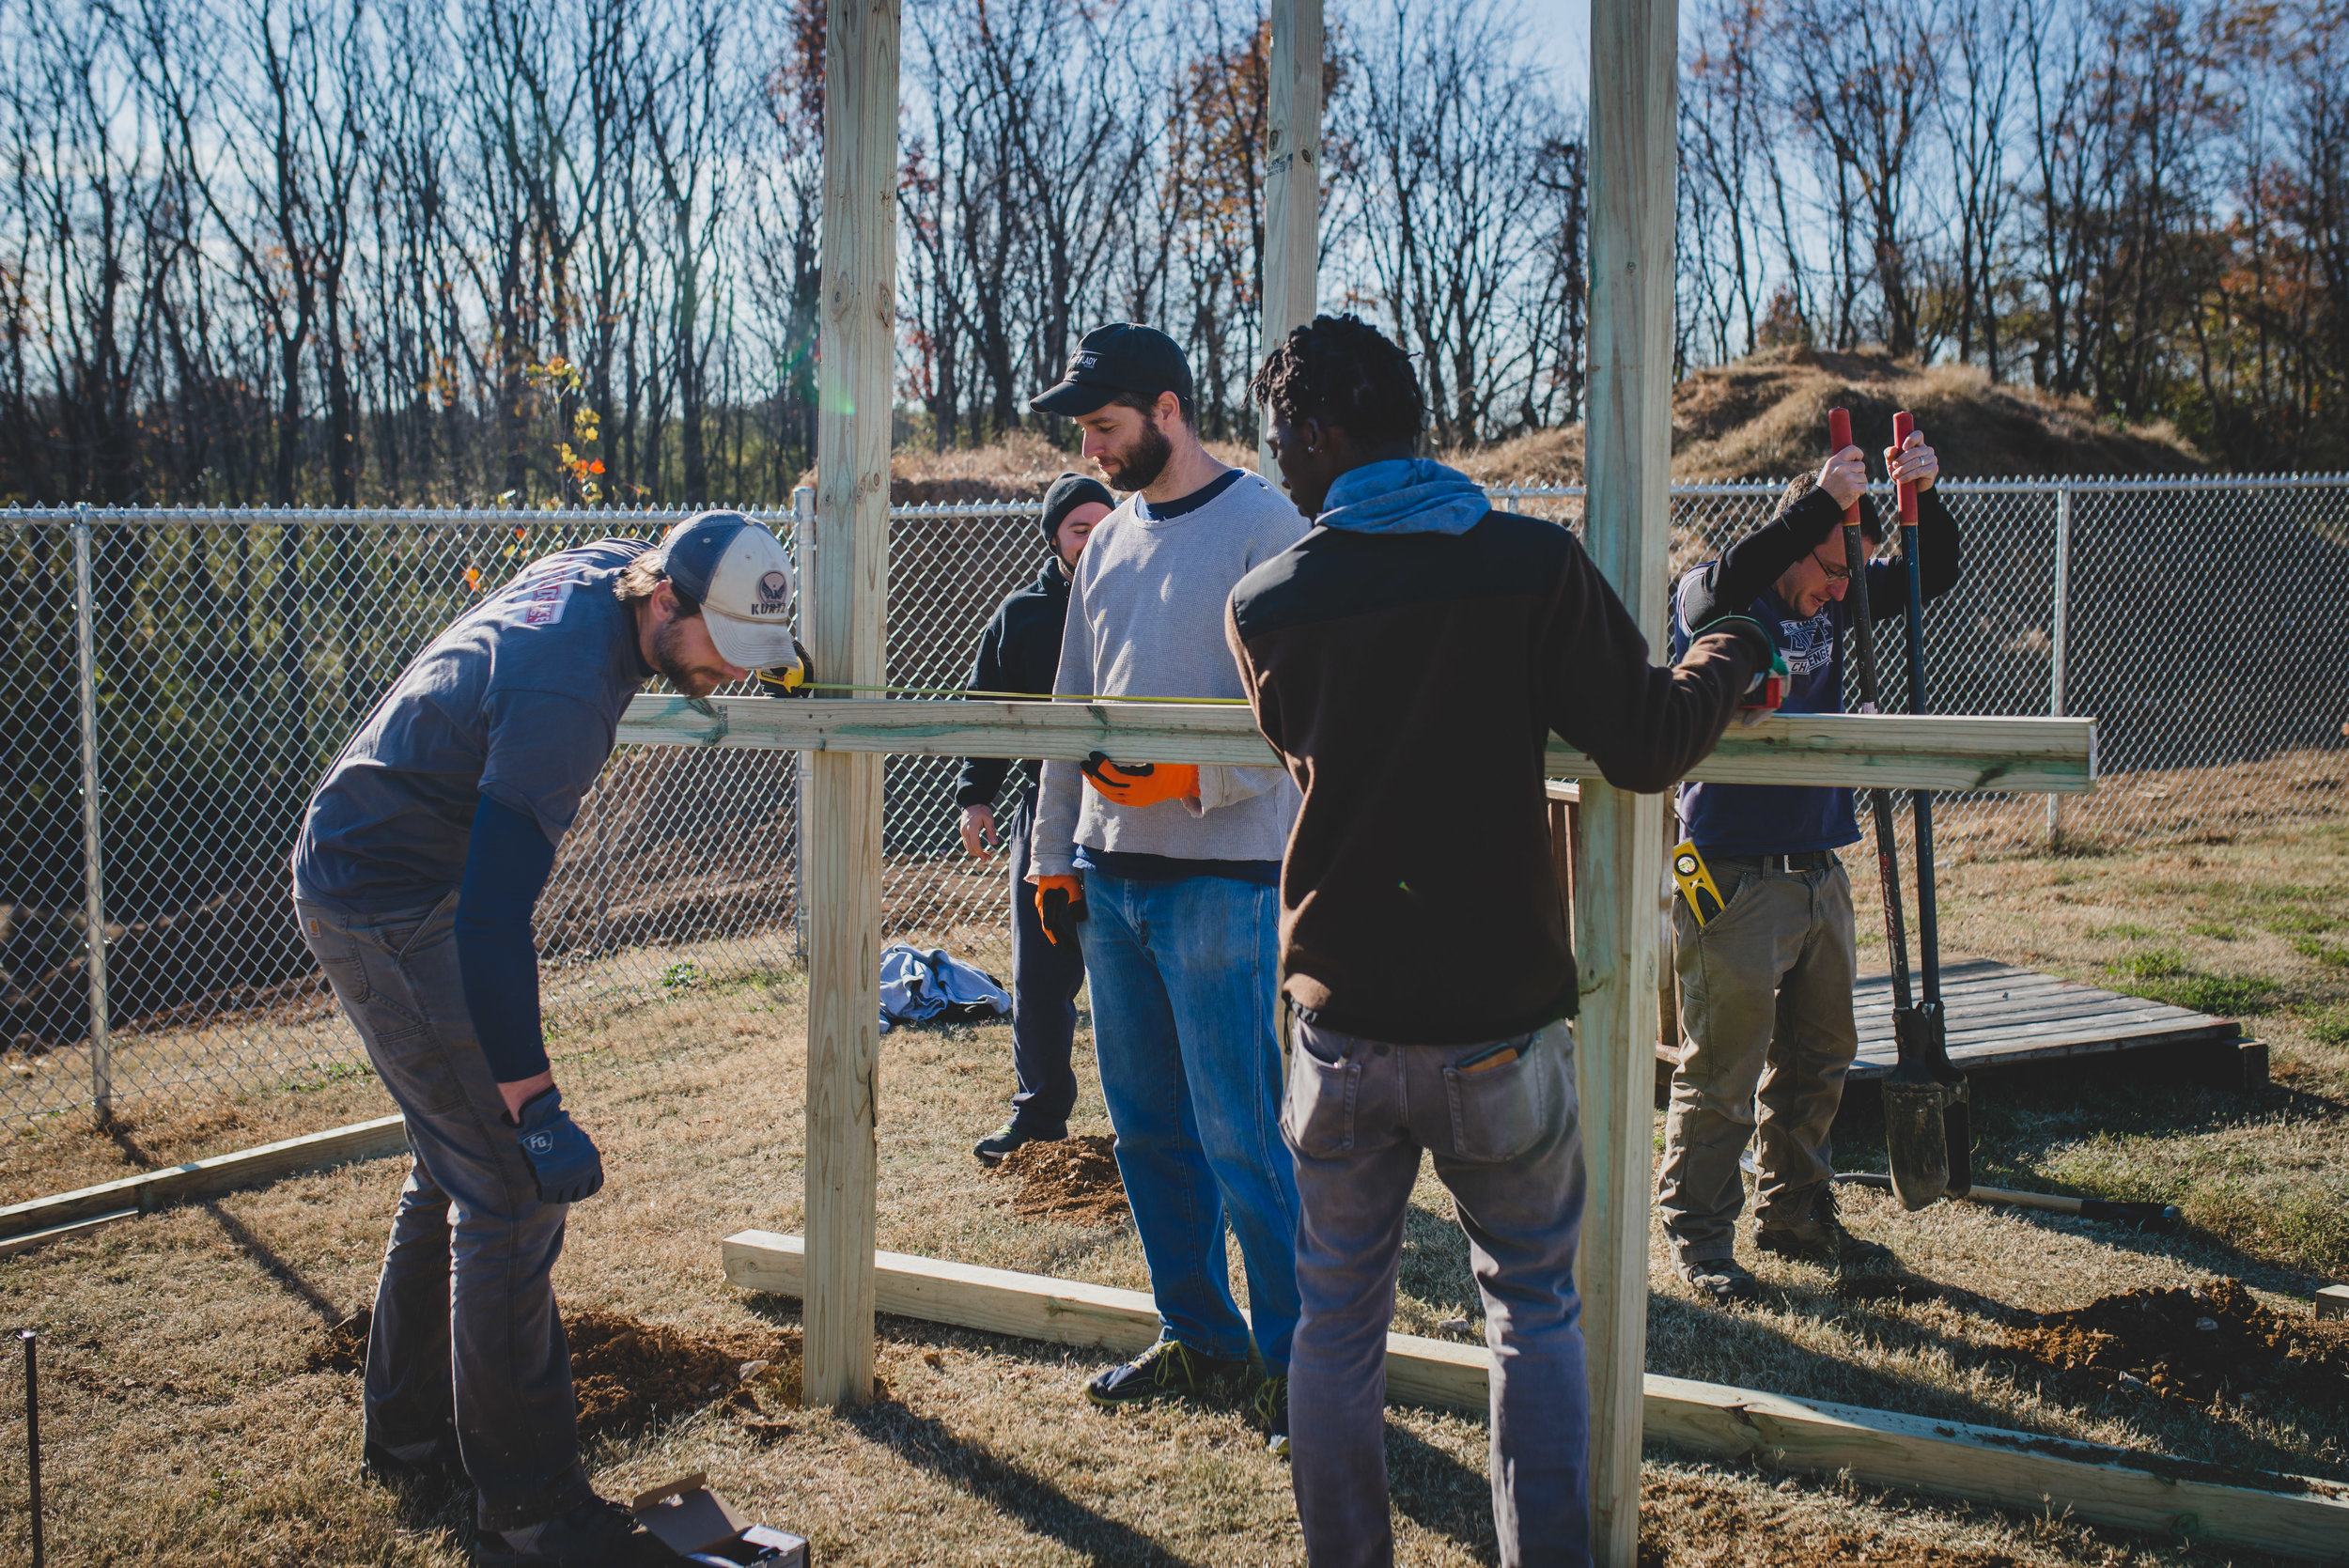 Our G.O.D. staff loved working with John when he would willingly and faithfully volunteer for projects, like the Academy for G.O.D. playground.